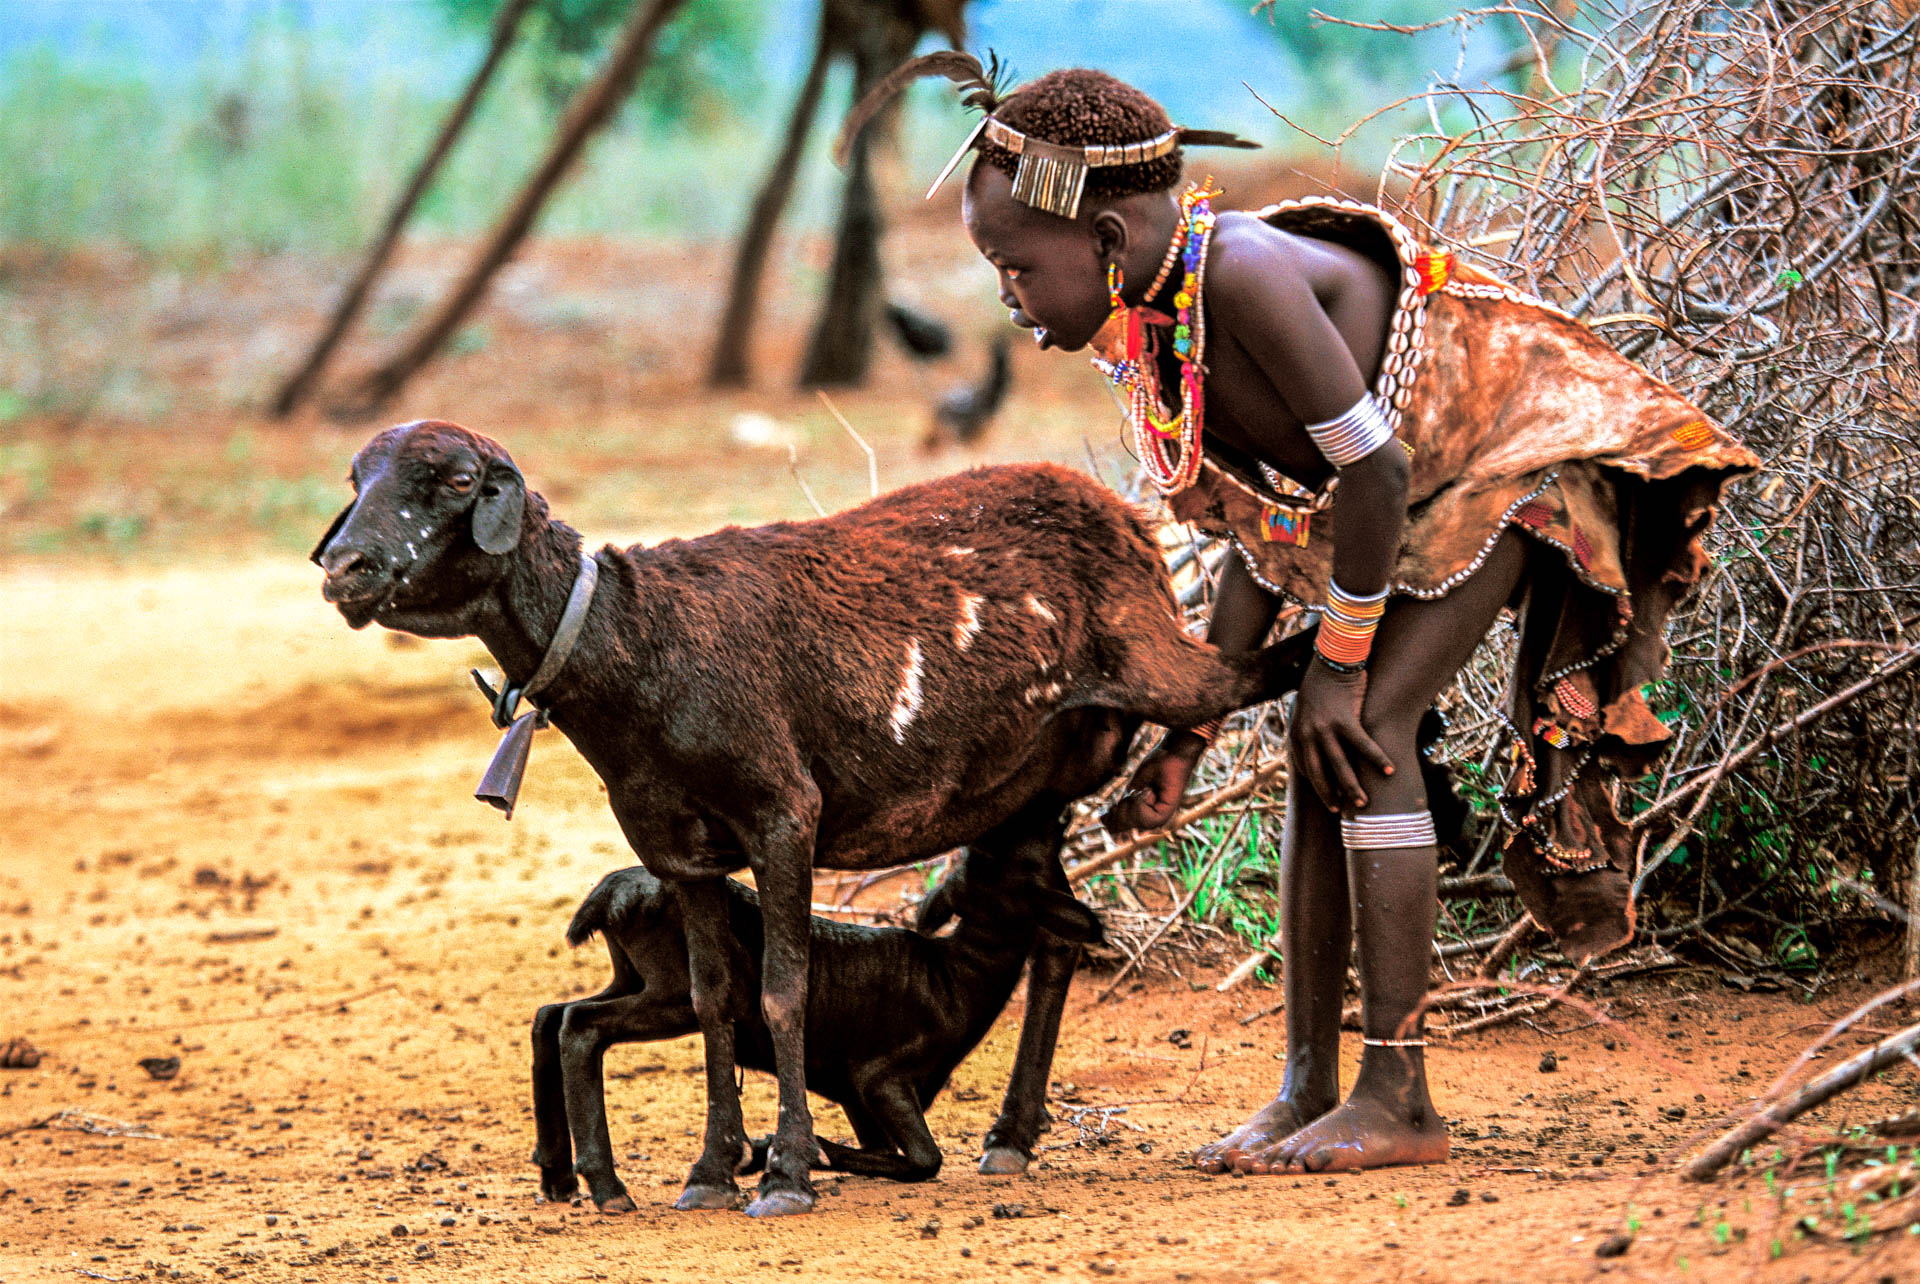 A girl from Arna is about to milk a goat.